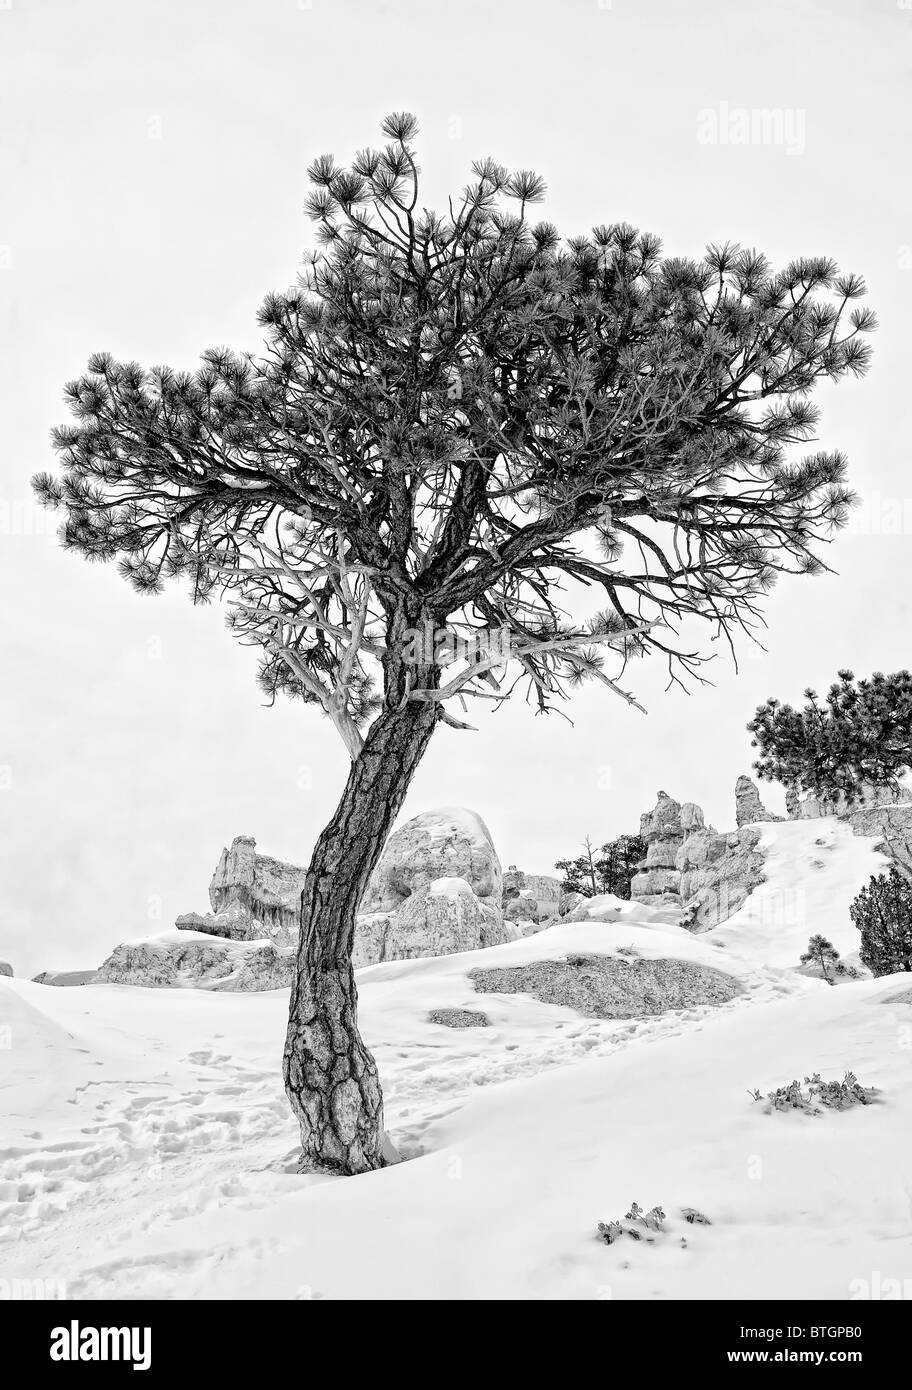 Pine tree in winter snow at Bryce Canyon - Stock Image